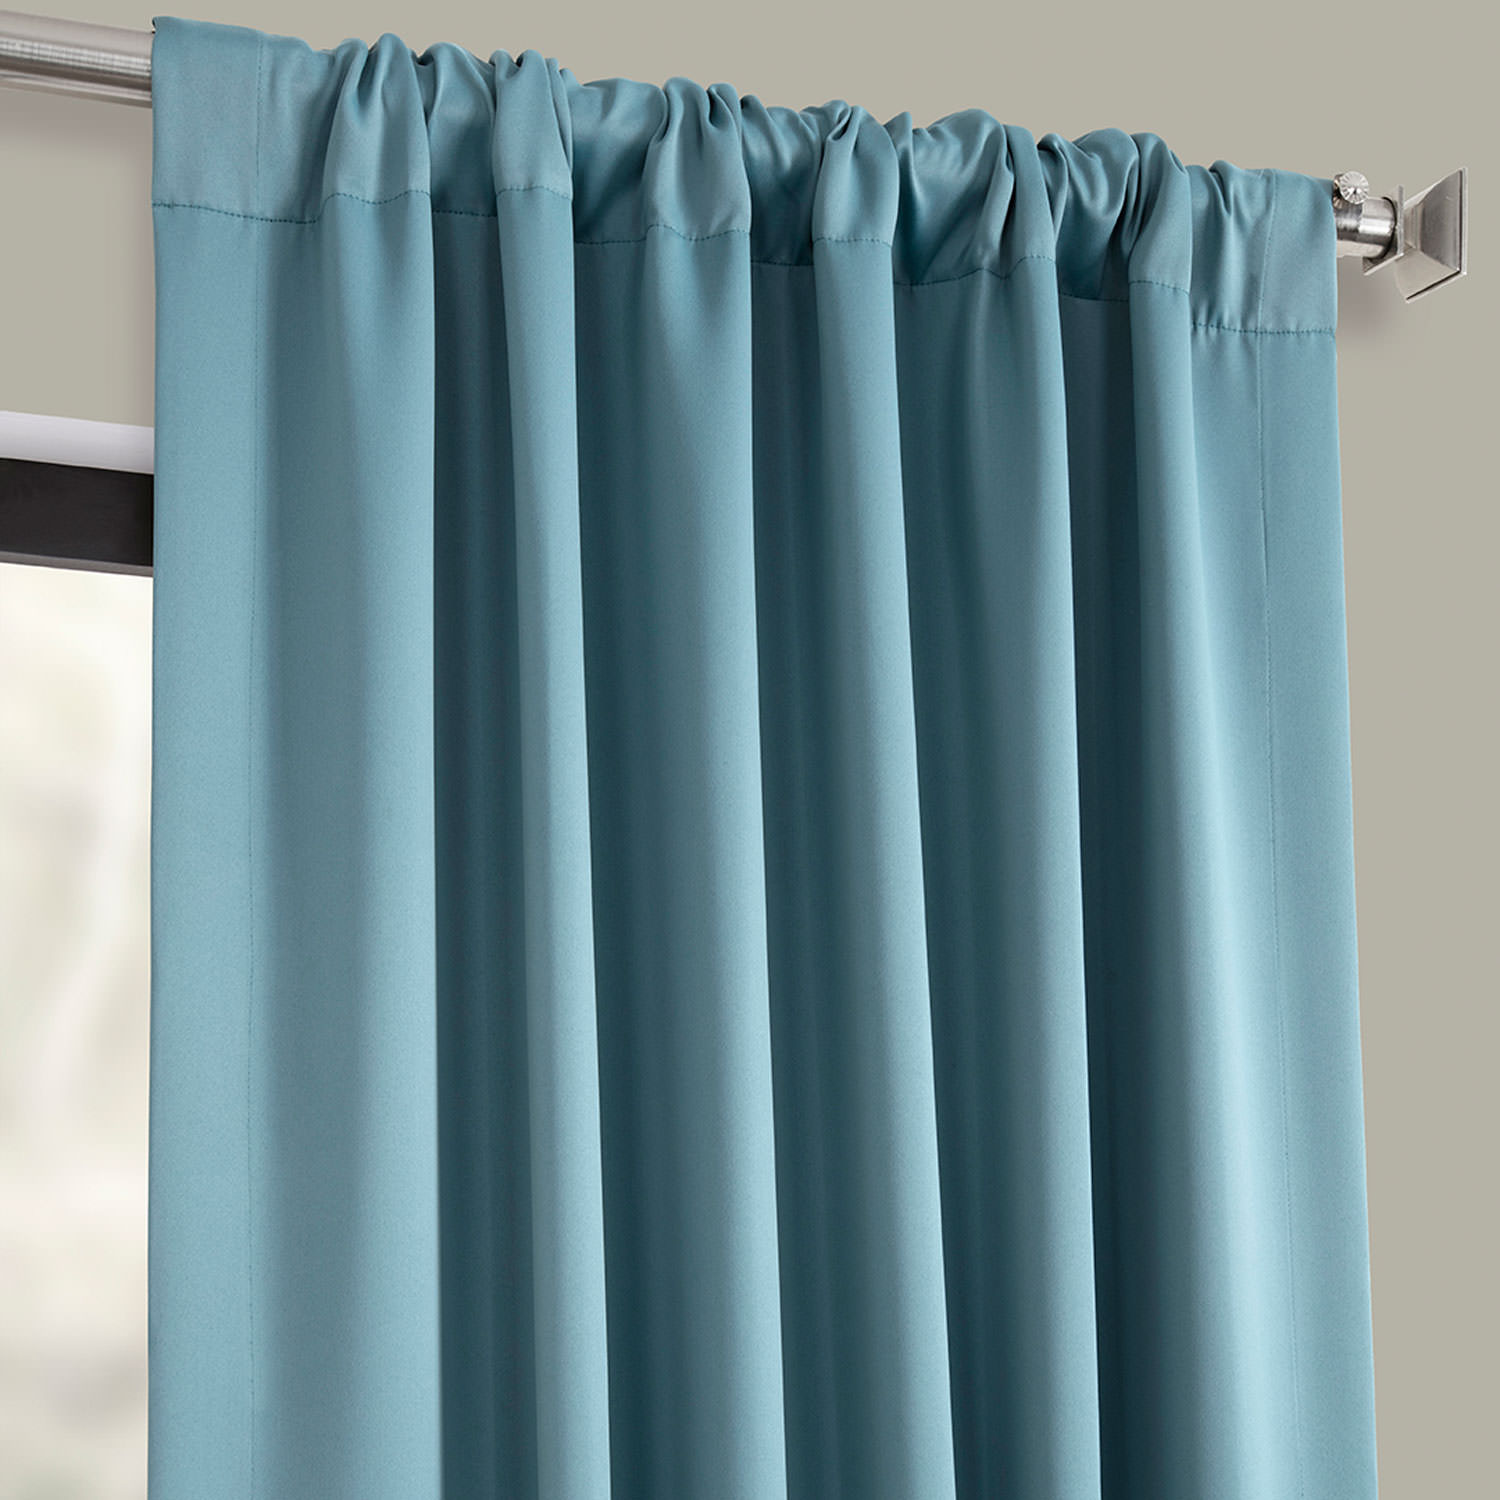 Get Dragonfly Teal Blackout Curtain And Drapes